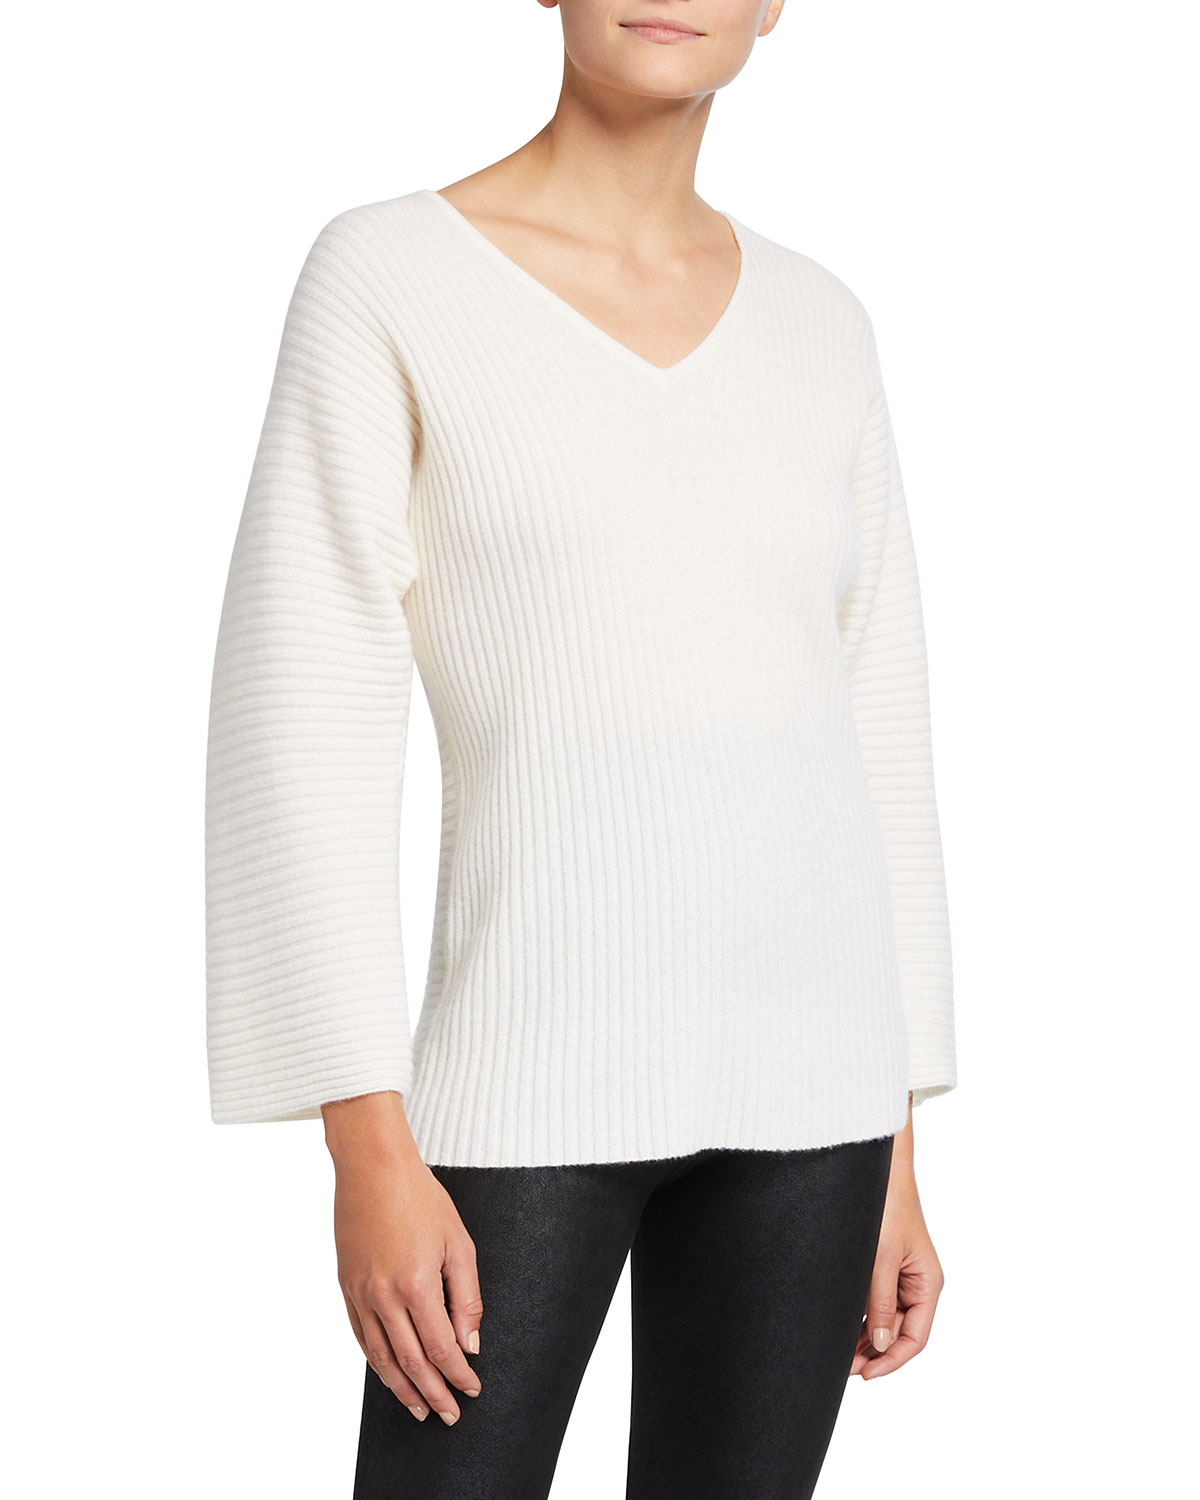 Neiman Marcus Cashmere Collection Ribbed V-Neck Cashmere Sweater